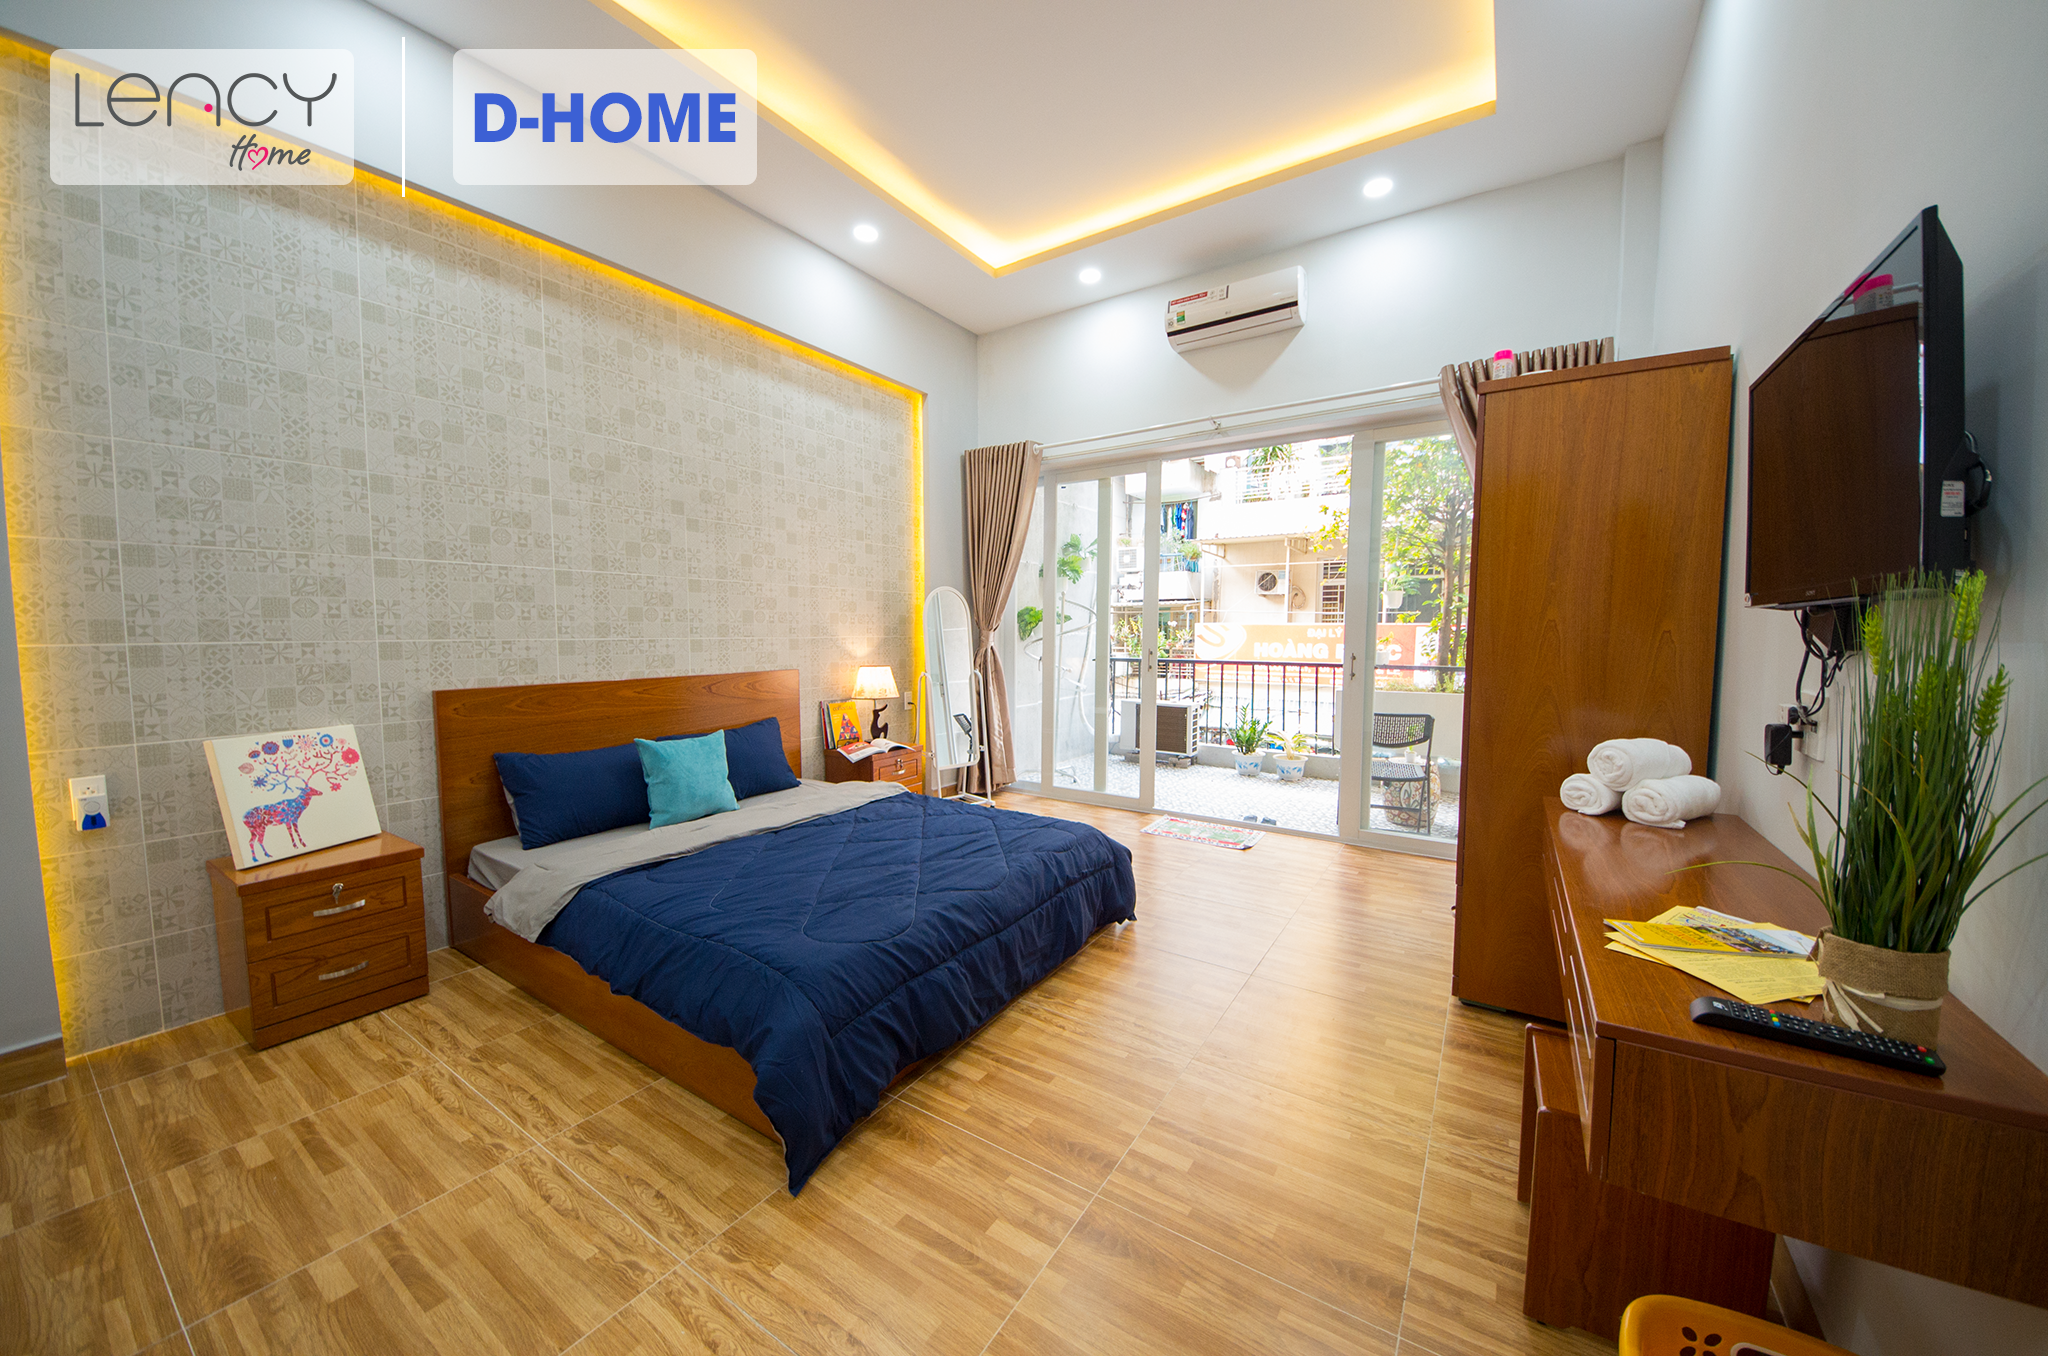 Lency Home 1 Bedroom Apartment In Ben Thanh